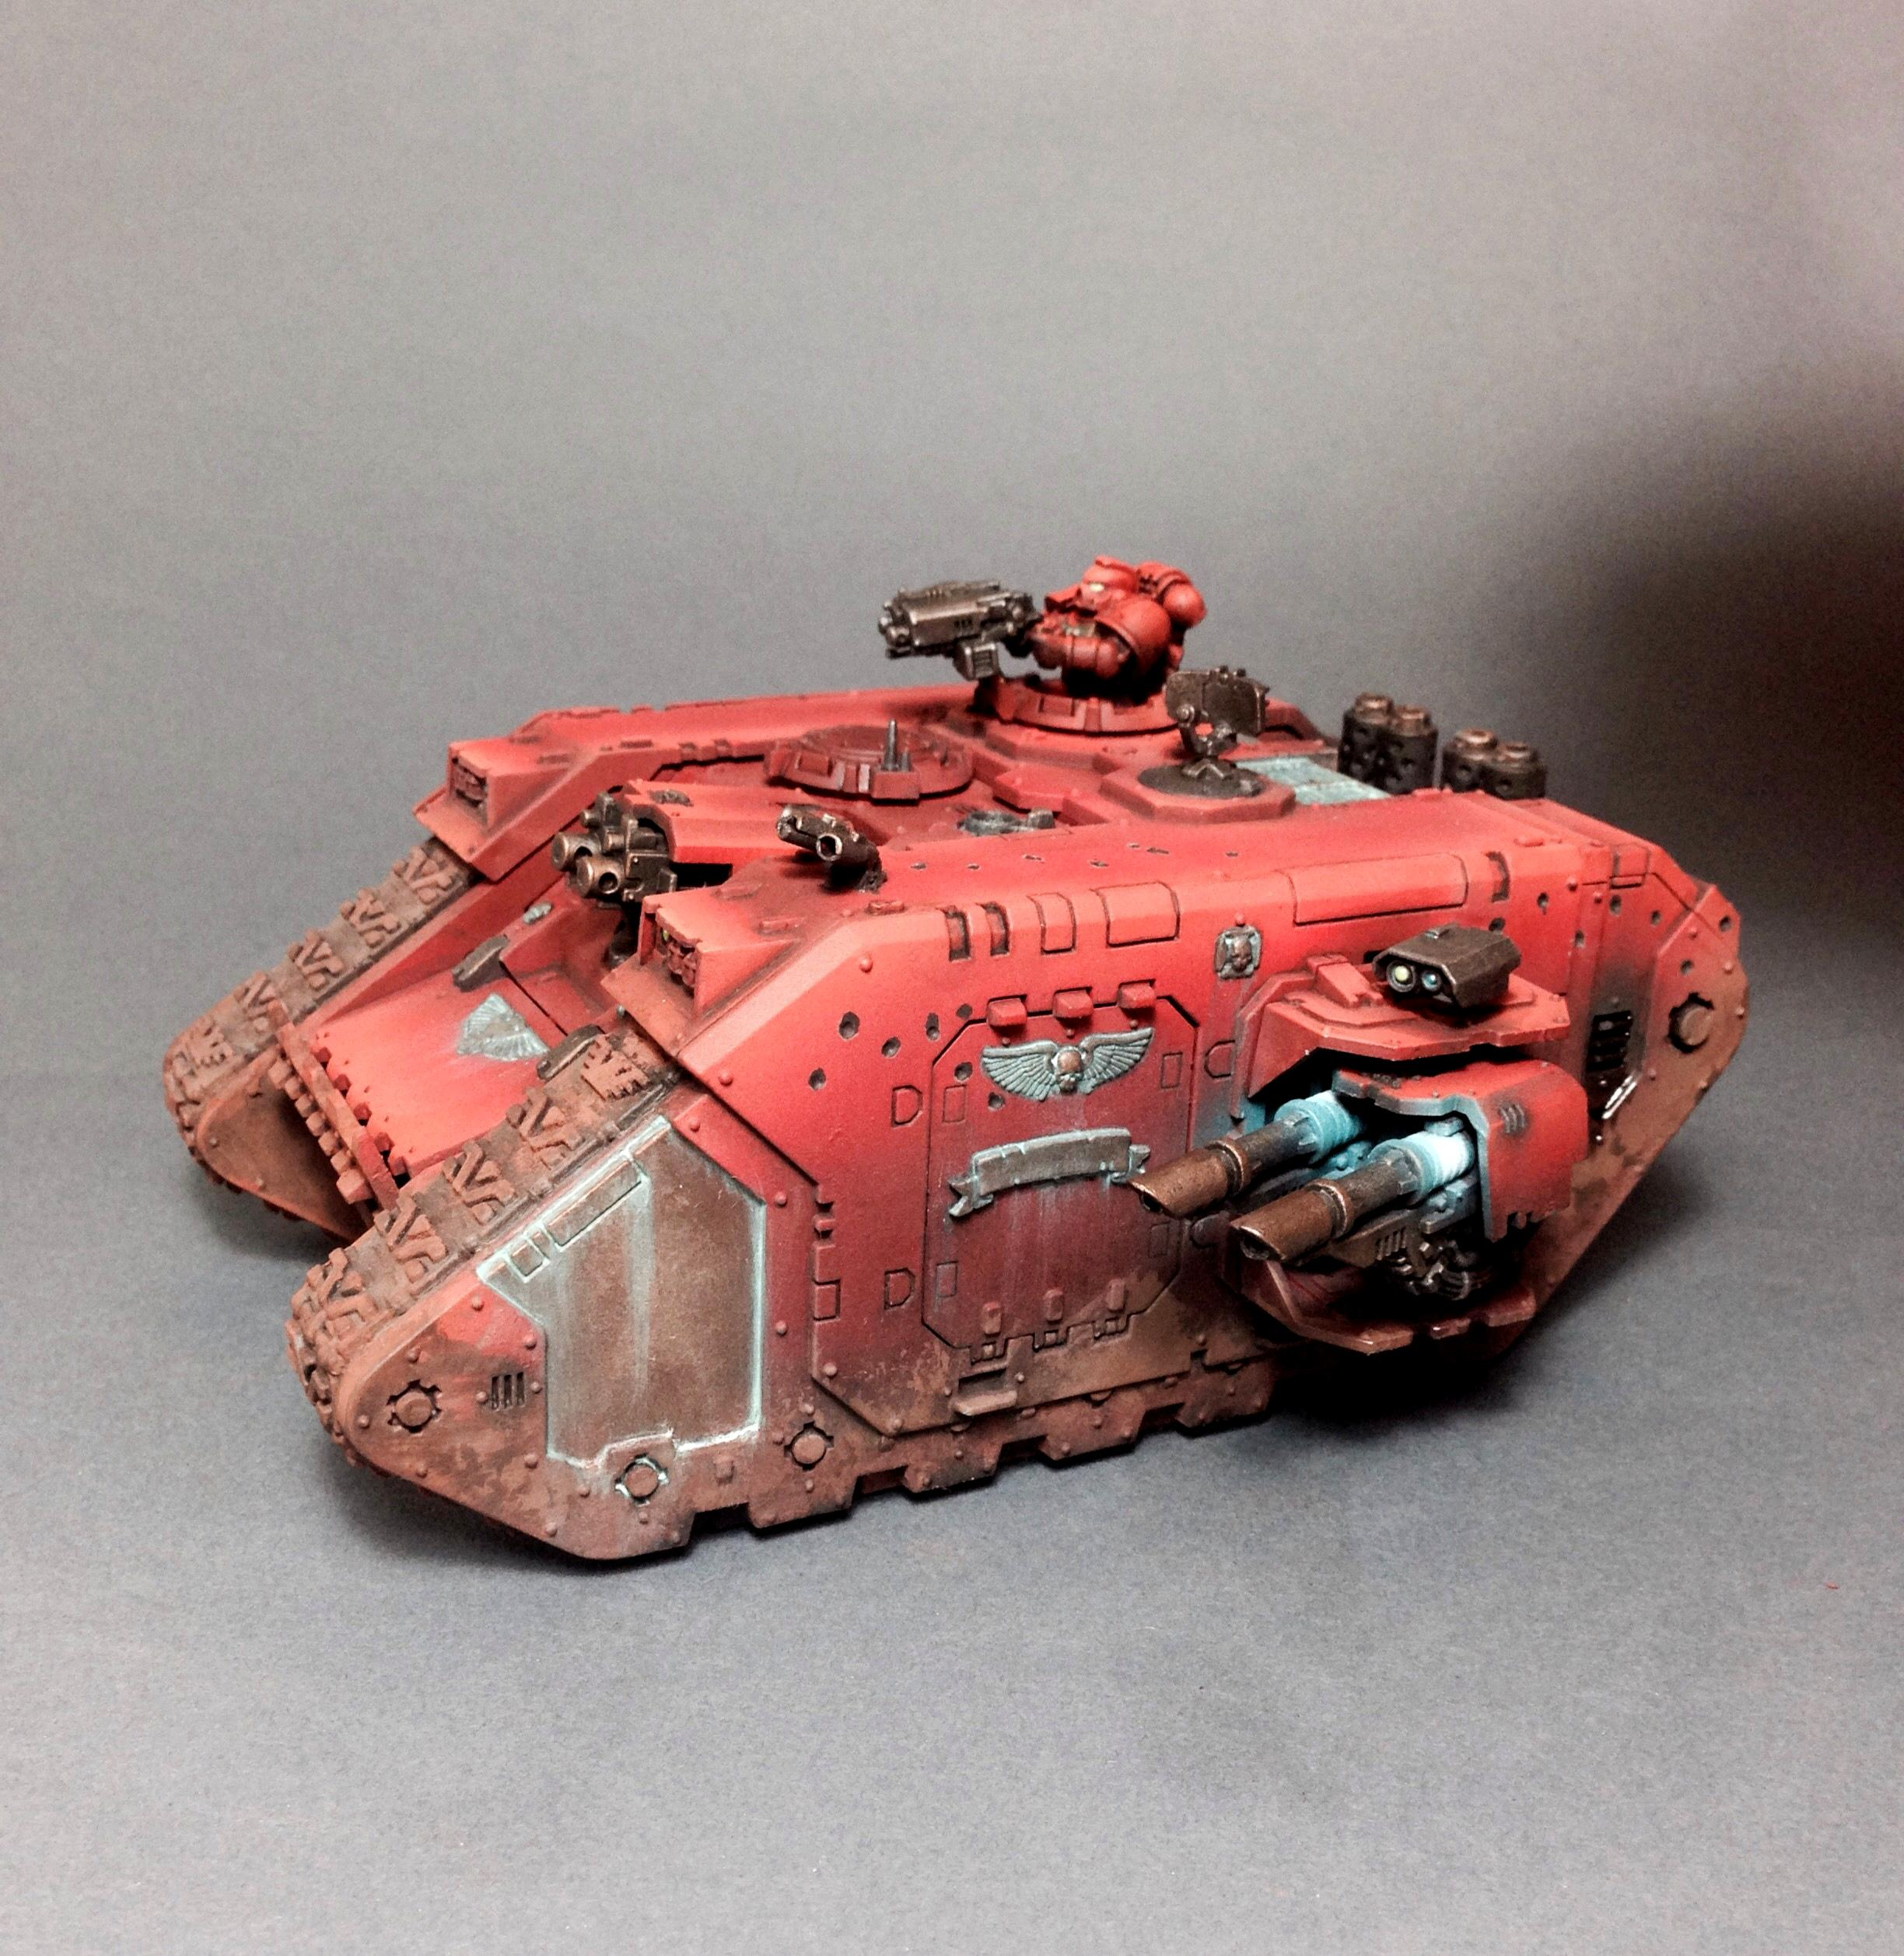 Airbrush, Blood Angels, Land Raider, Object Source Lighting, Pigment, Verdigris, Weathered